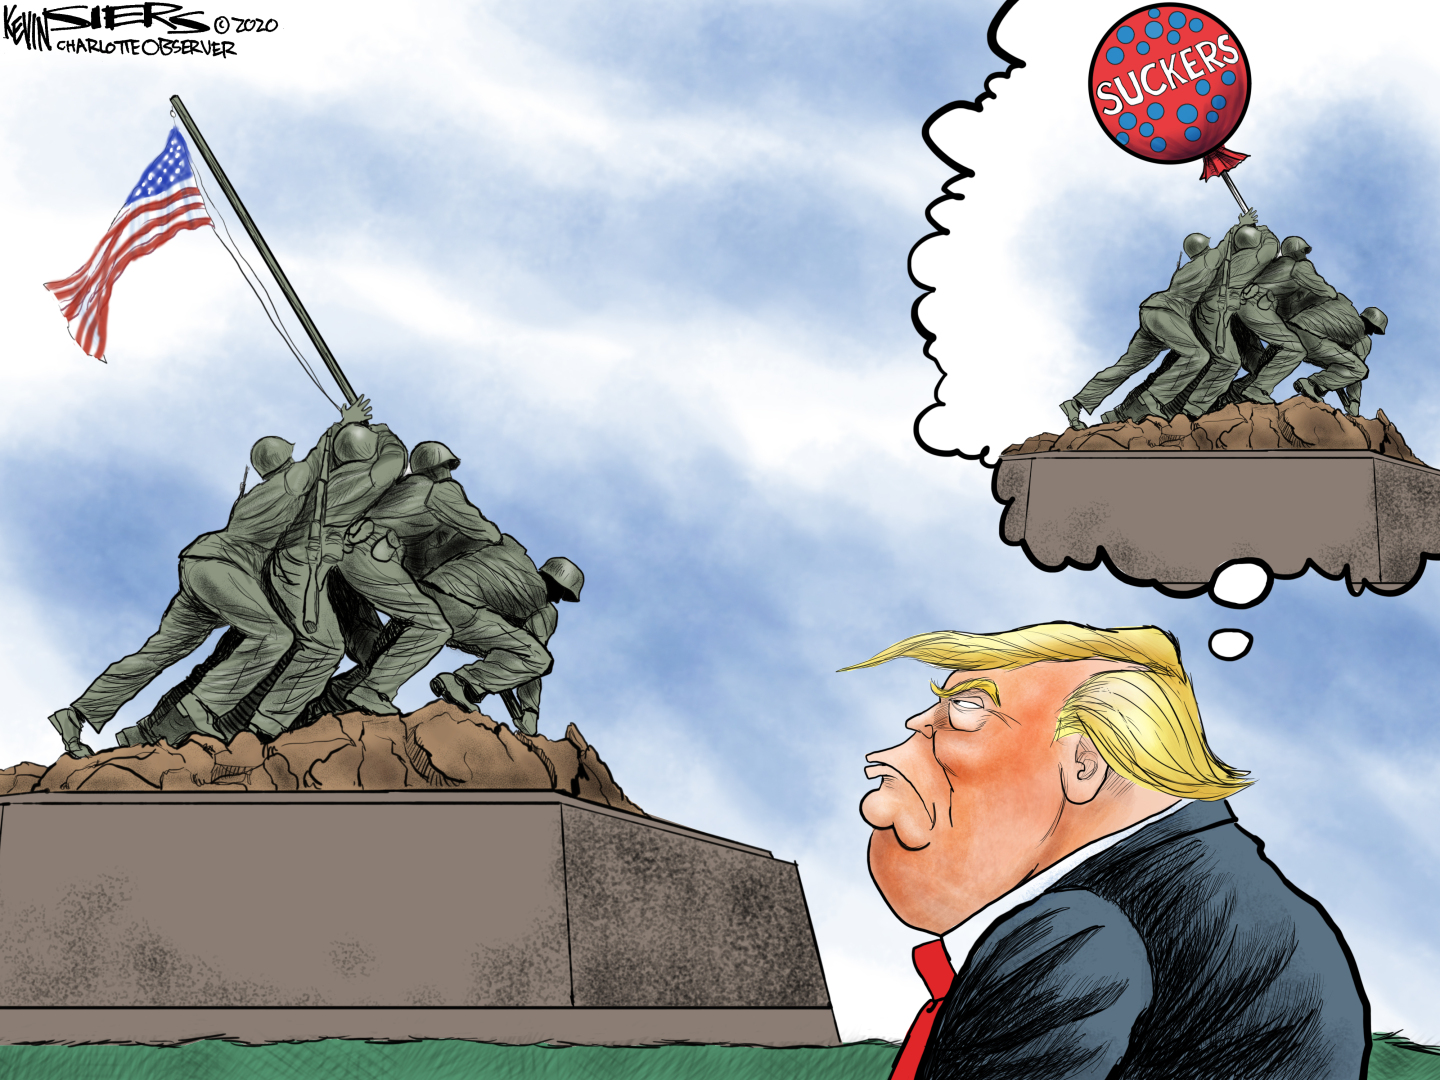 Trump calls those who serve in the armed forces as 'losers'.